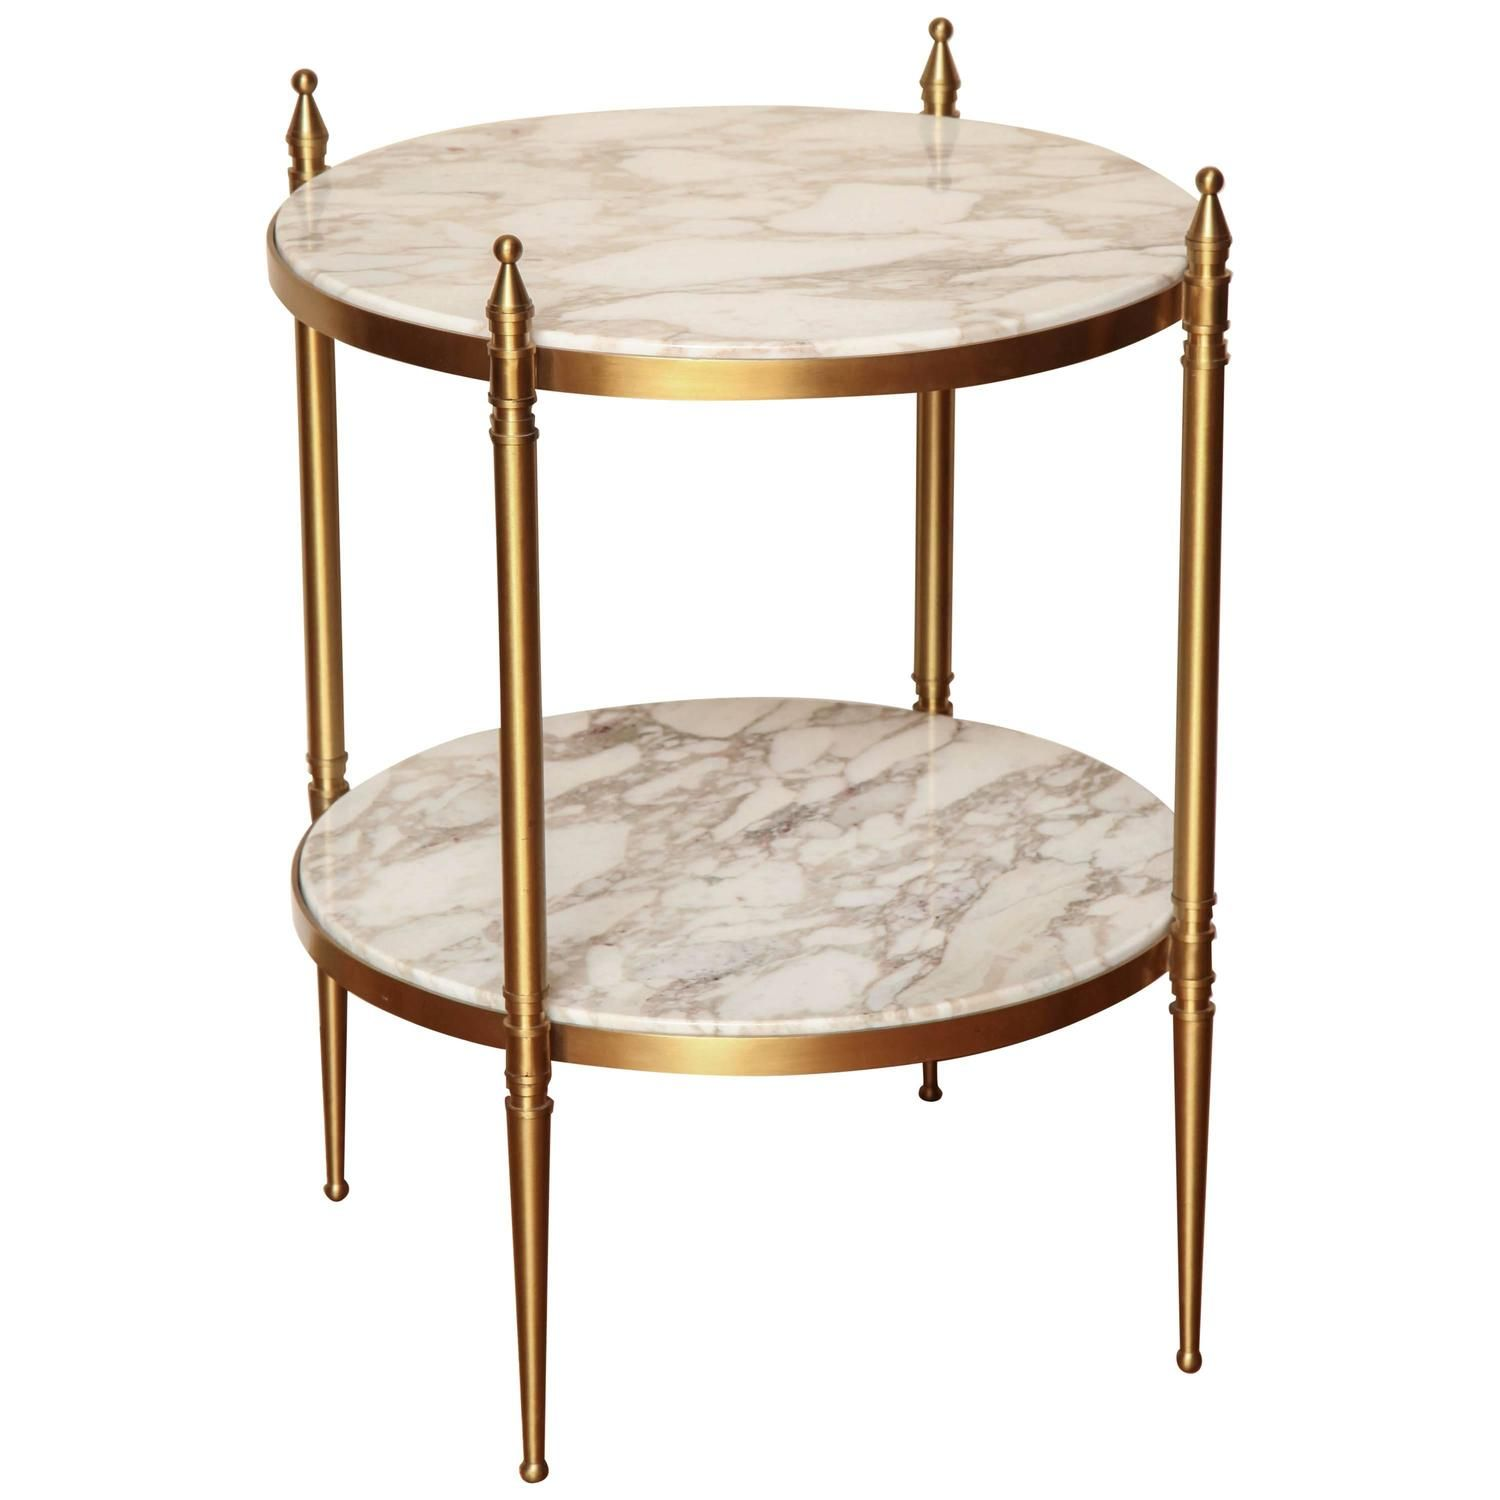 Two Tiered Small Round Side Table Small Round Side Table Round Accent Table Round Side Table